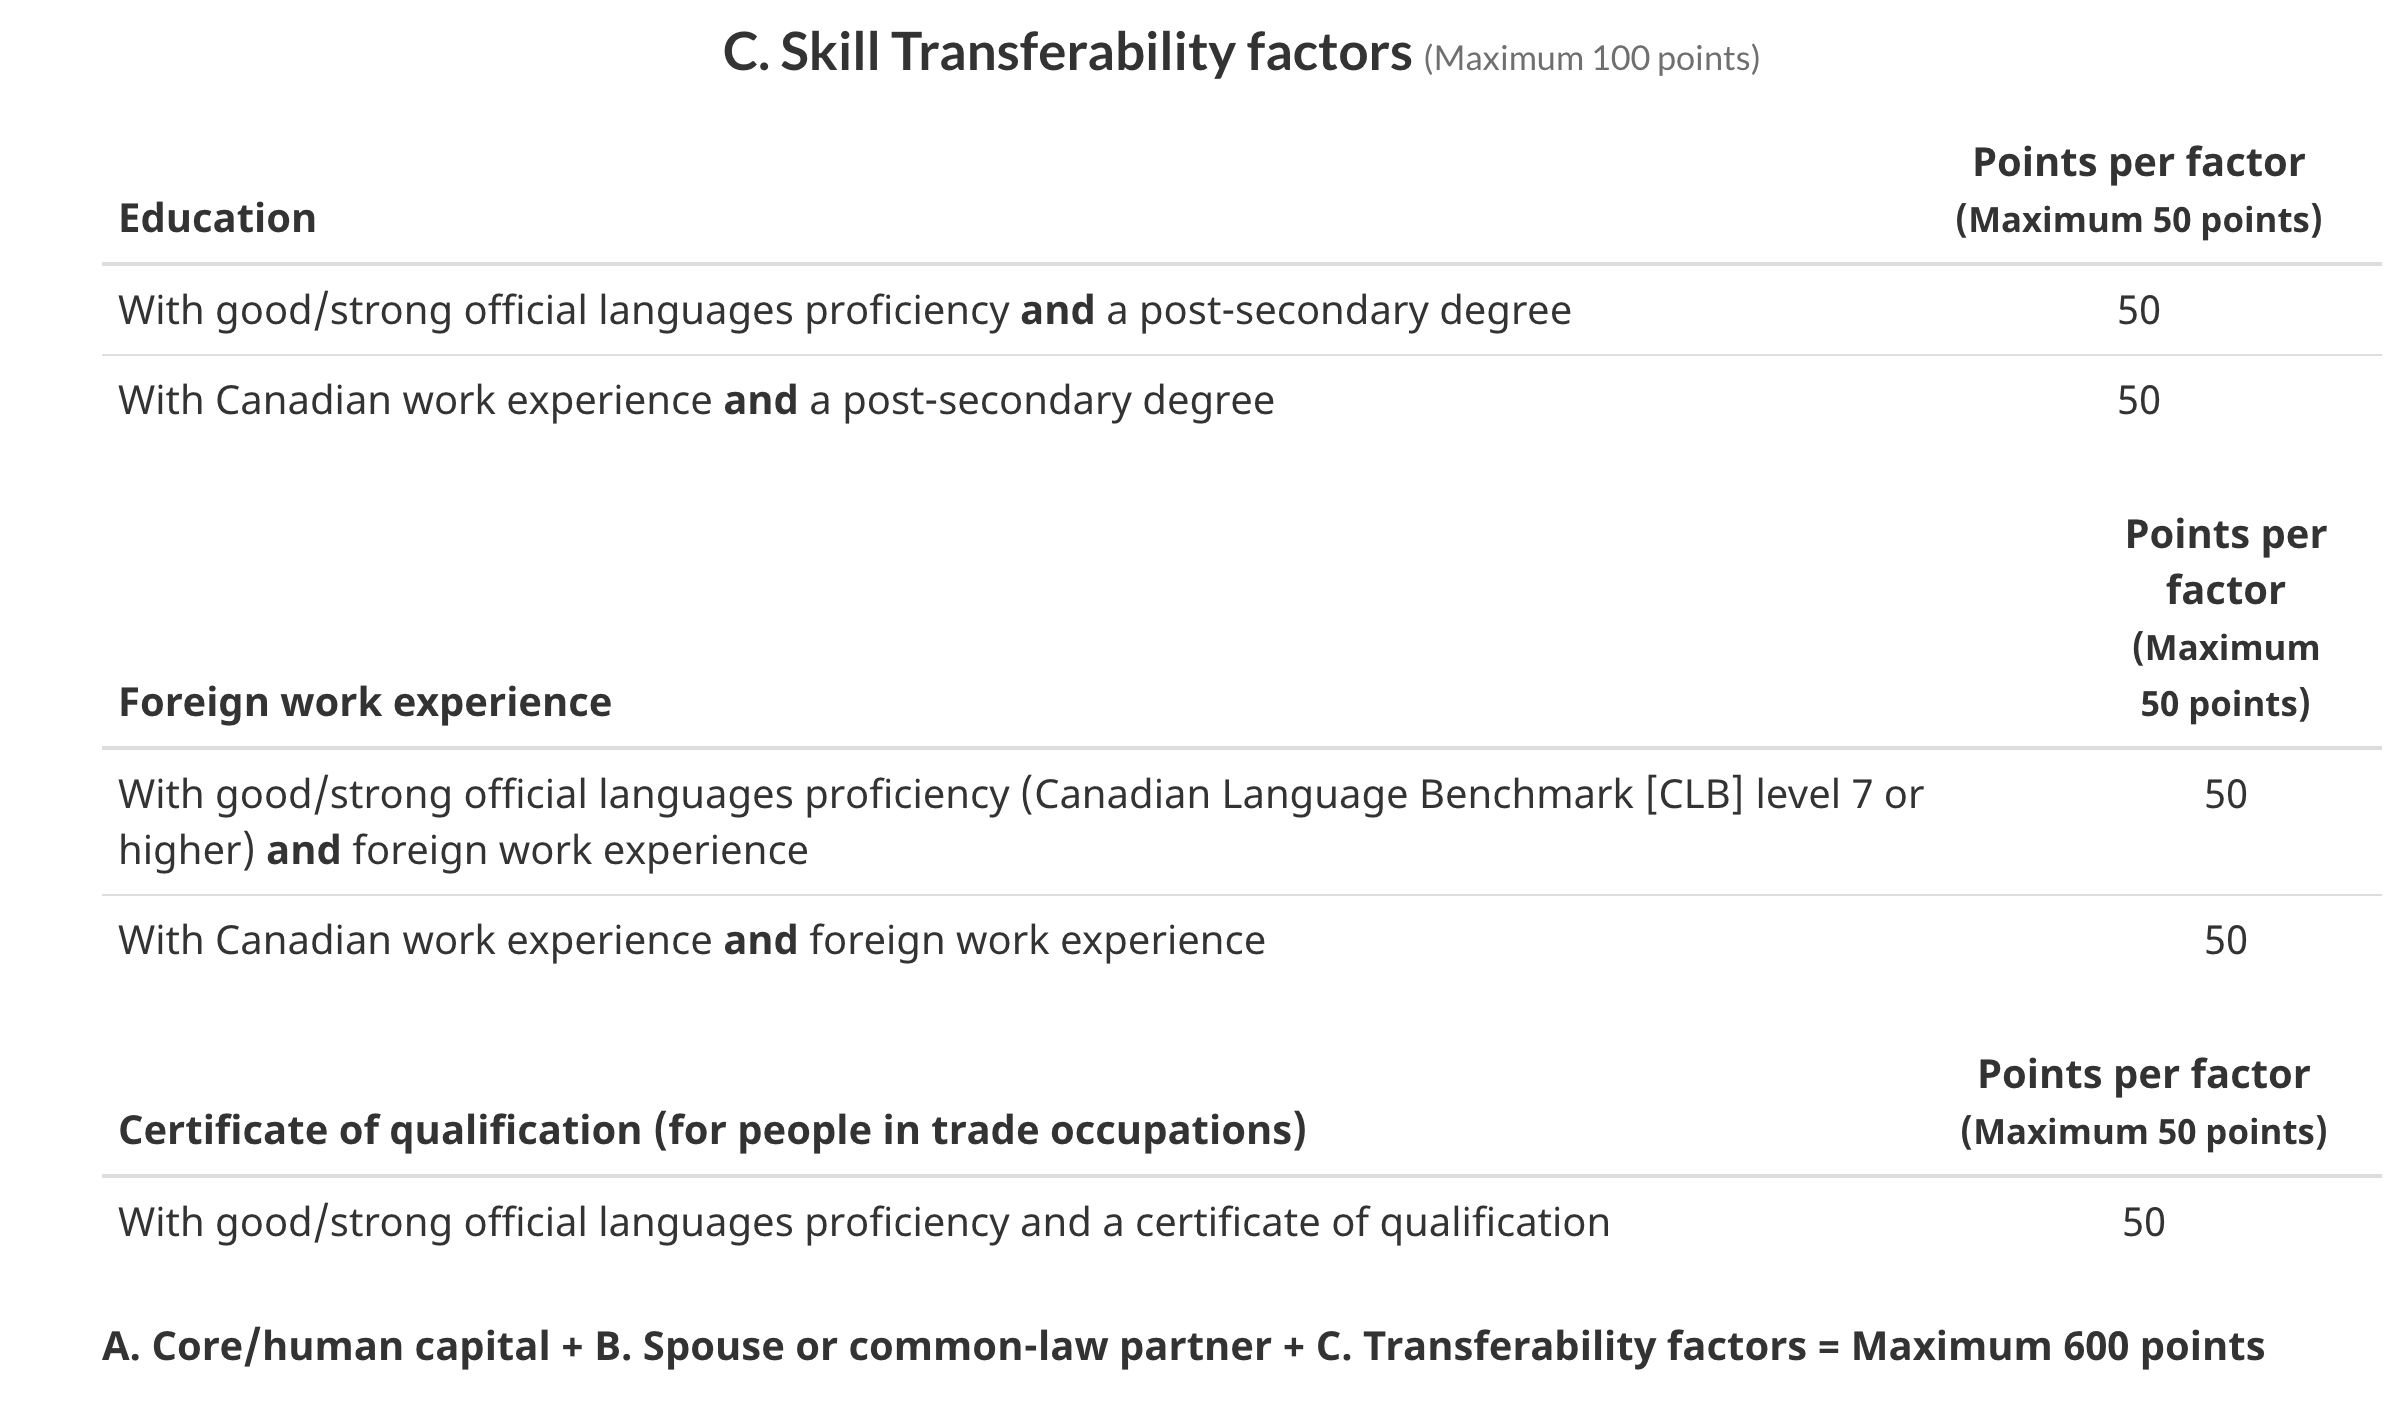 Skills Transferability Factors in CRS